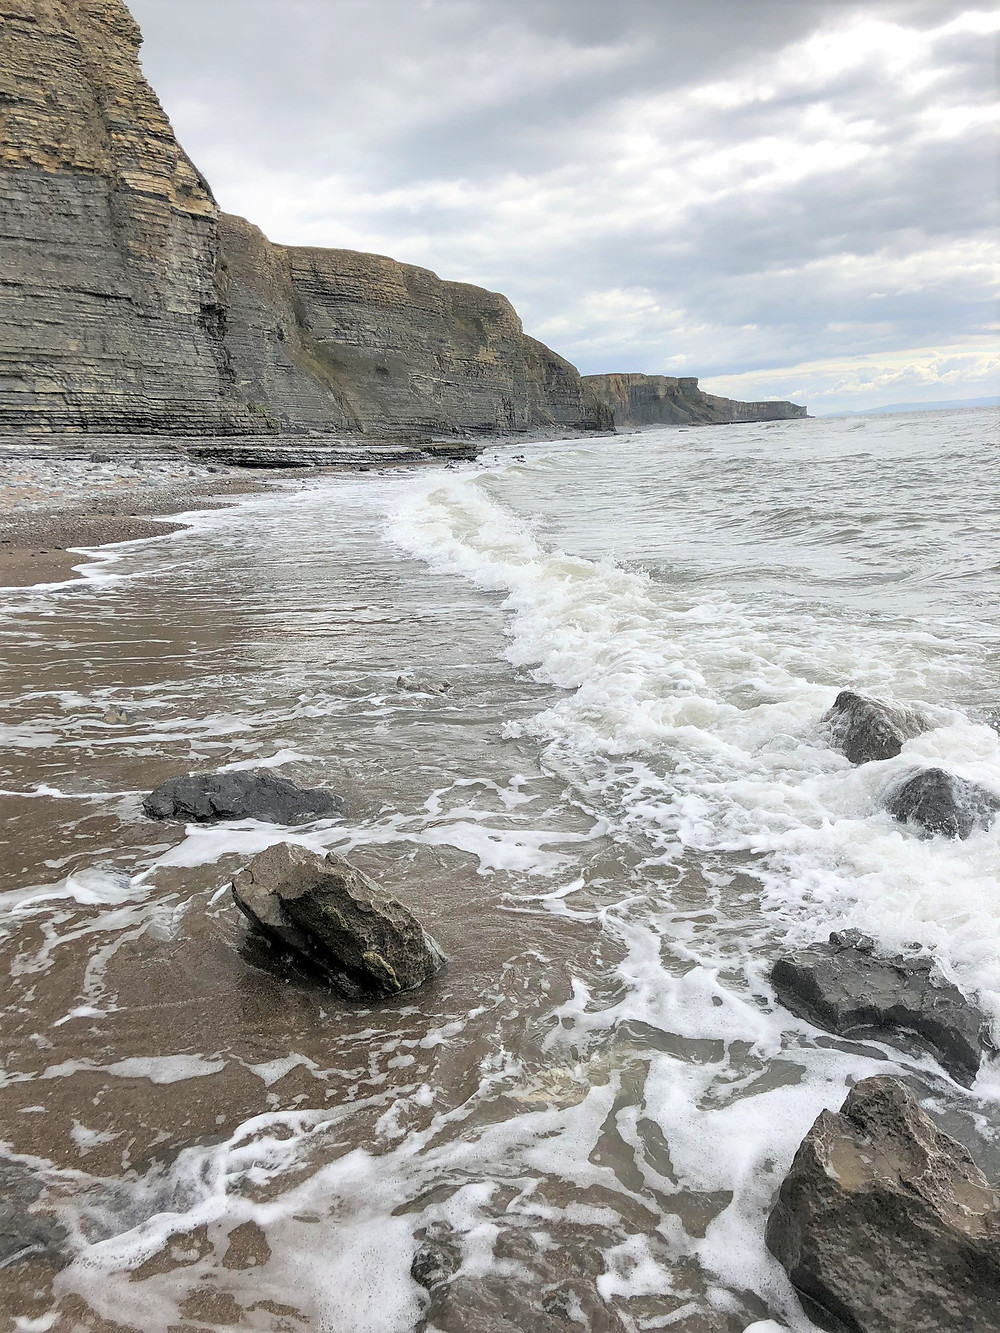 Low tide at the beach at the base of the Jurassic Cliffs of Wales along the Glamorgan Heritage Coastal Trail